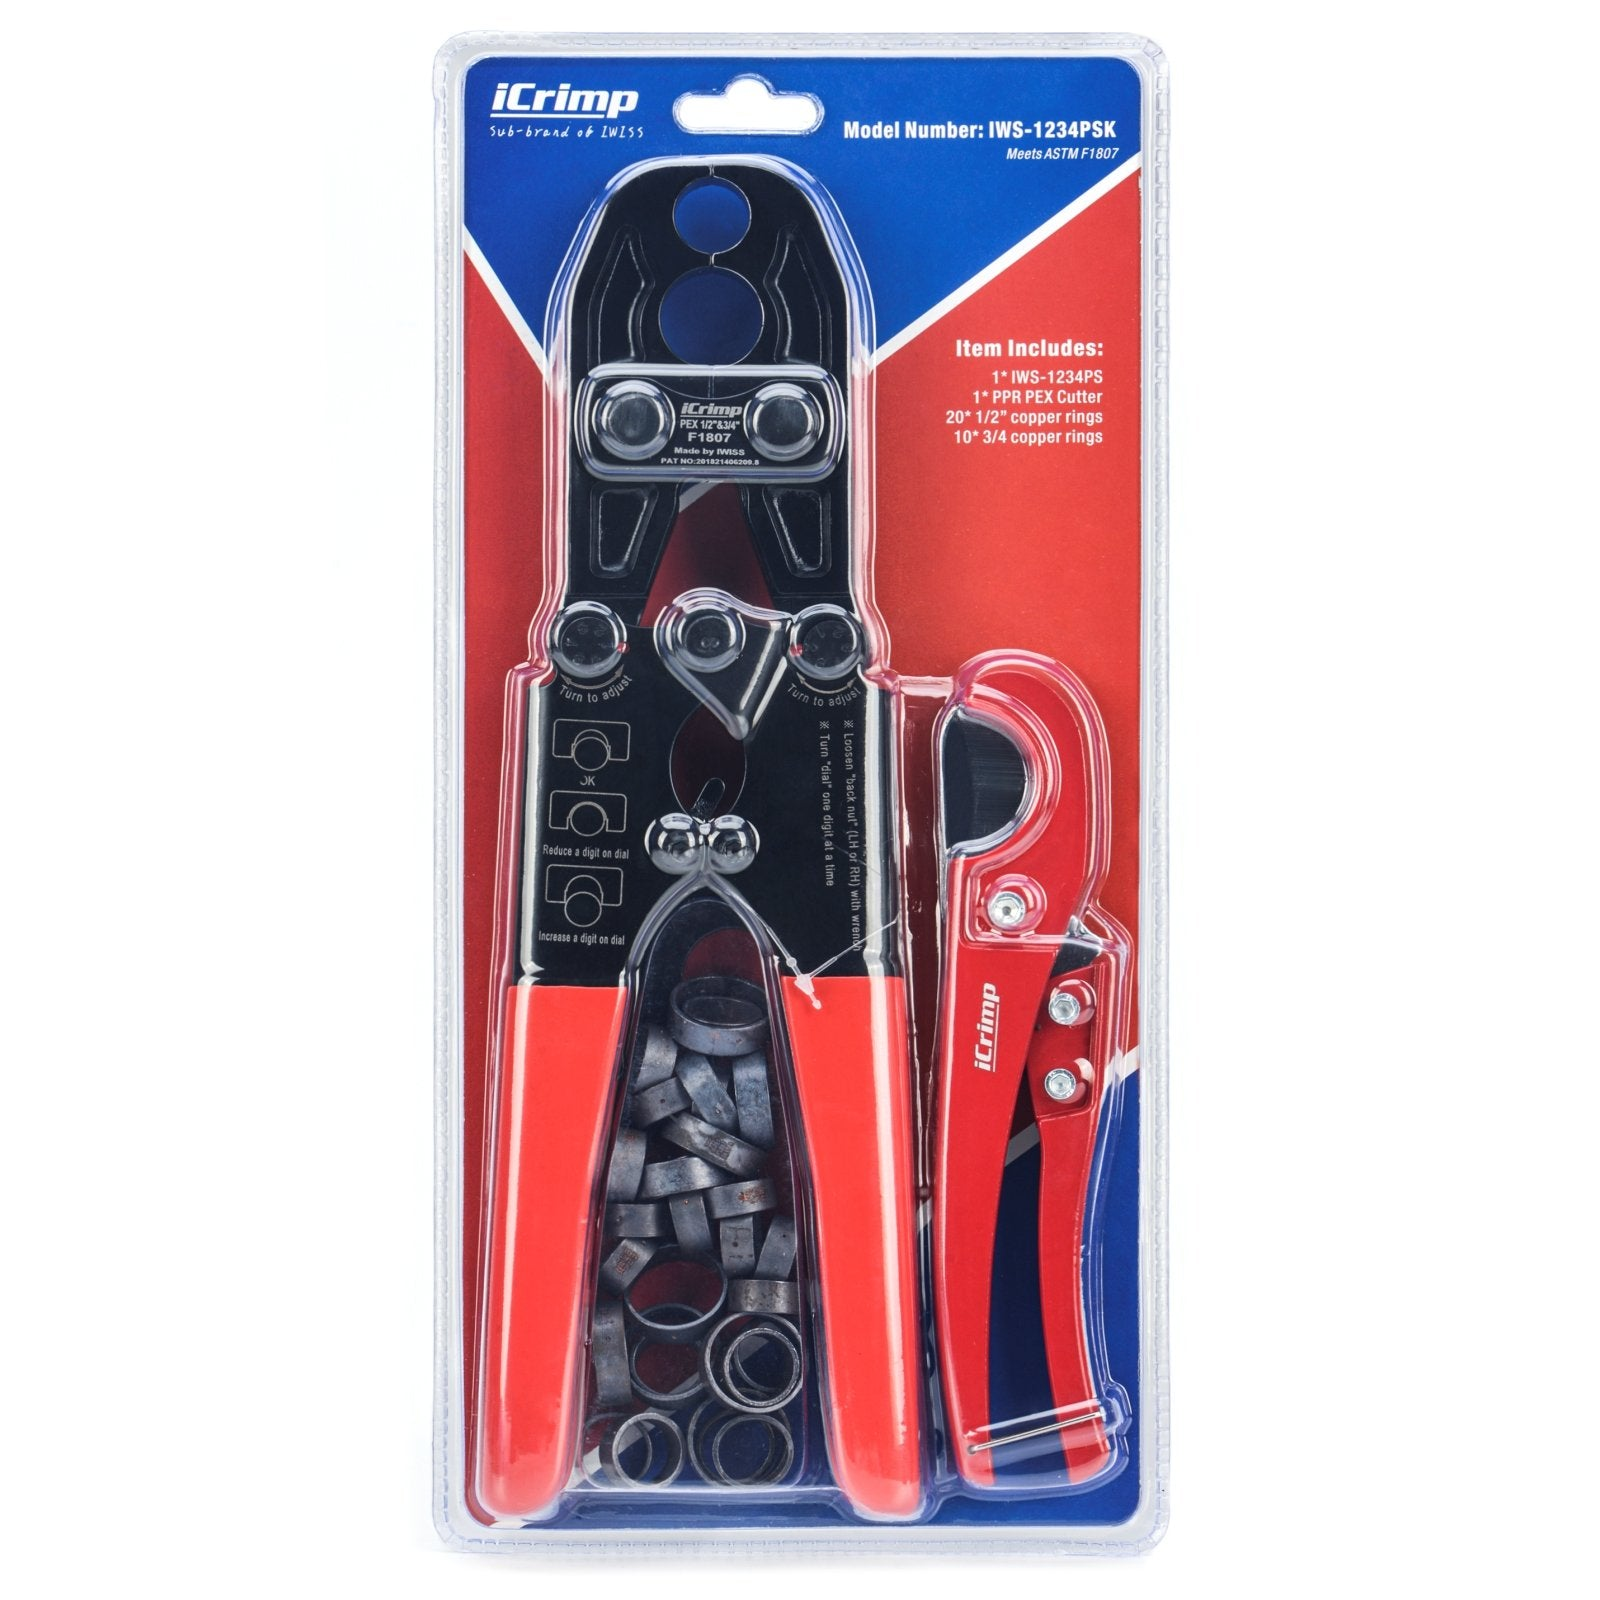 ASTM F1807 1/2 and 3/4-inch Dual PEX Crimper w/Copper Rings,PEX Cutter and Gauge